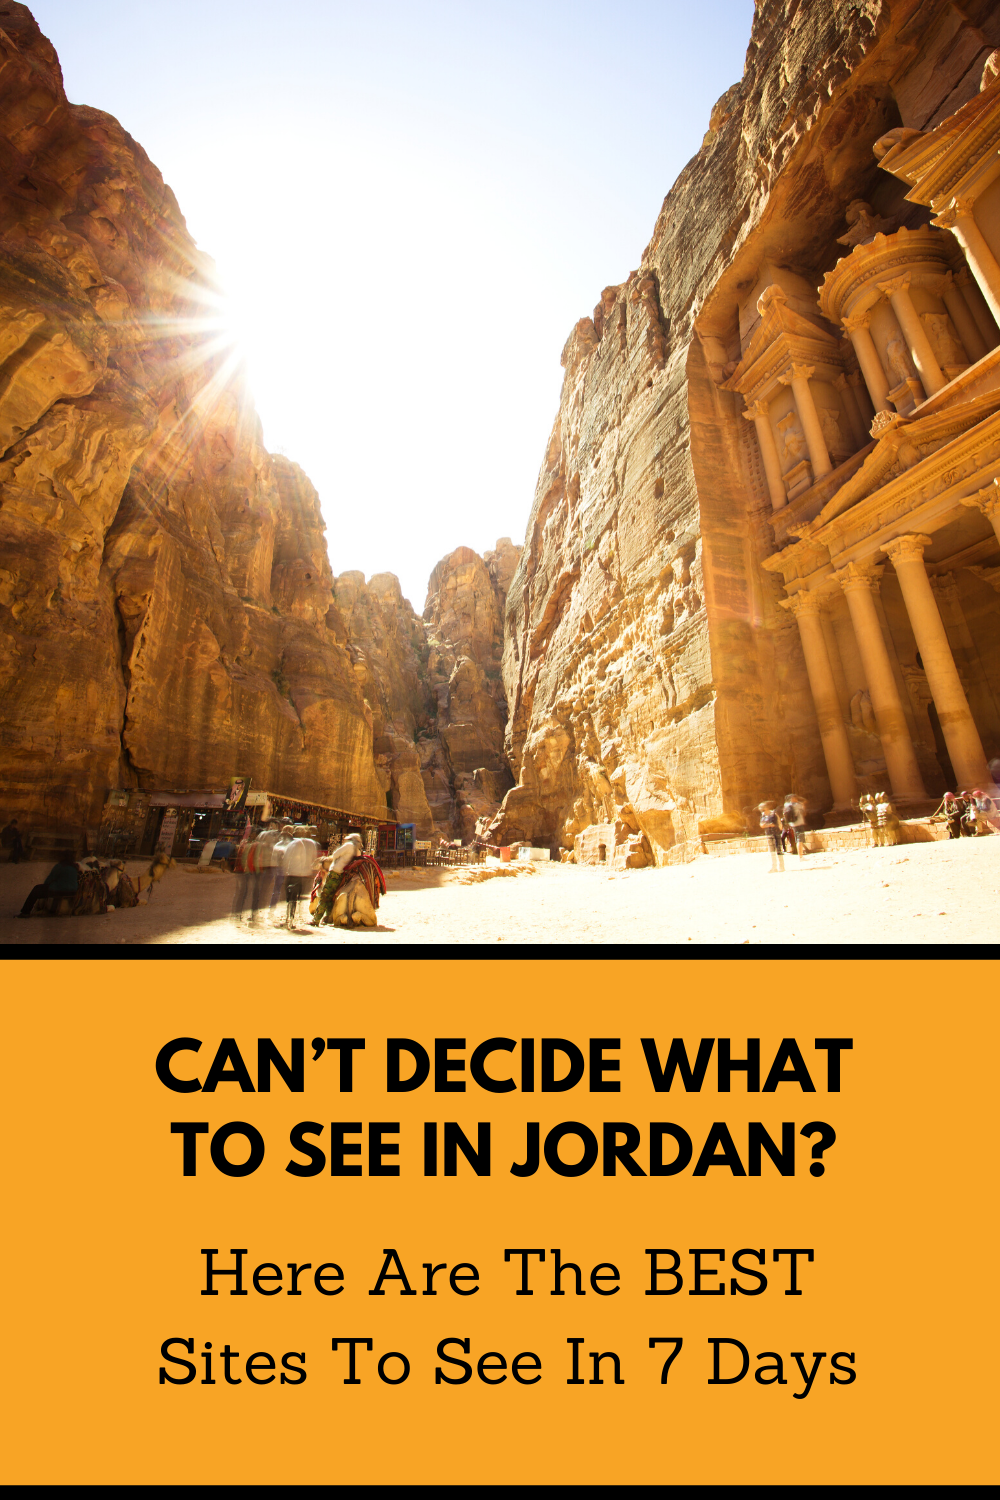 Your Best And Most Exciting 7 Day Jordan Itinerary Everyfurthermile In 2020 Jordan Travel Petra Travel Itinerary